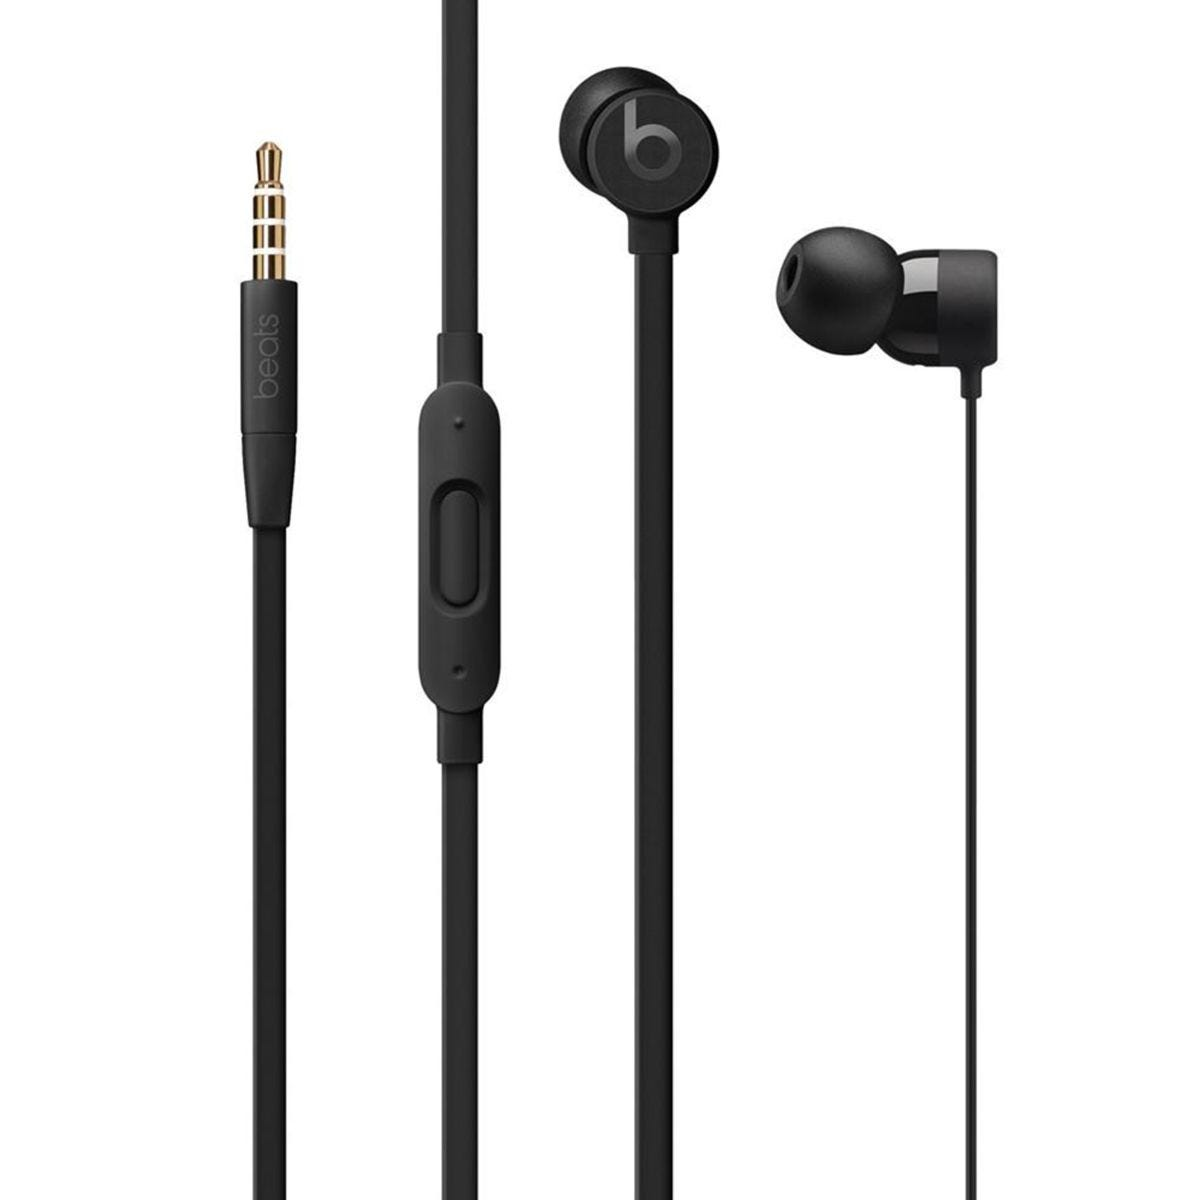 Beats urBeats3 In-ear Wired Headphones with 3.5mm Plug - Black